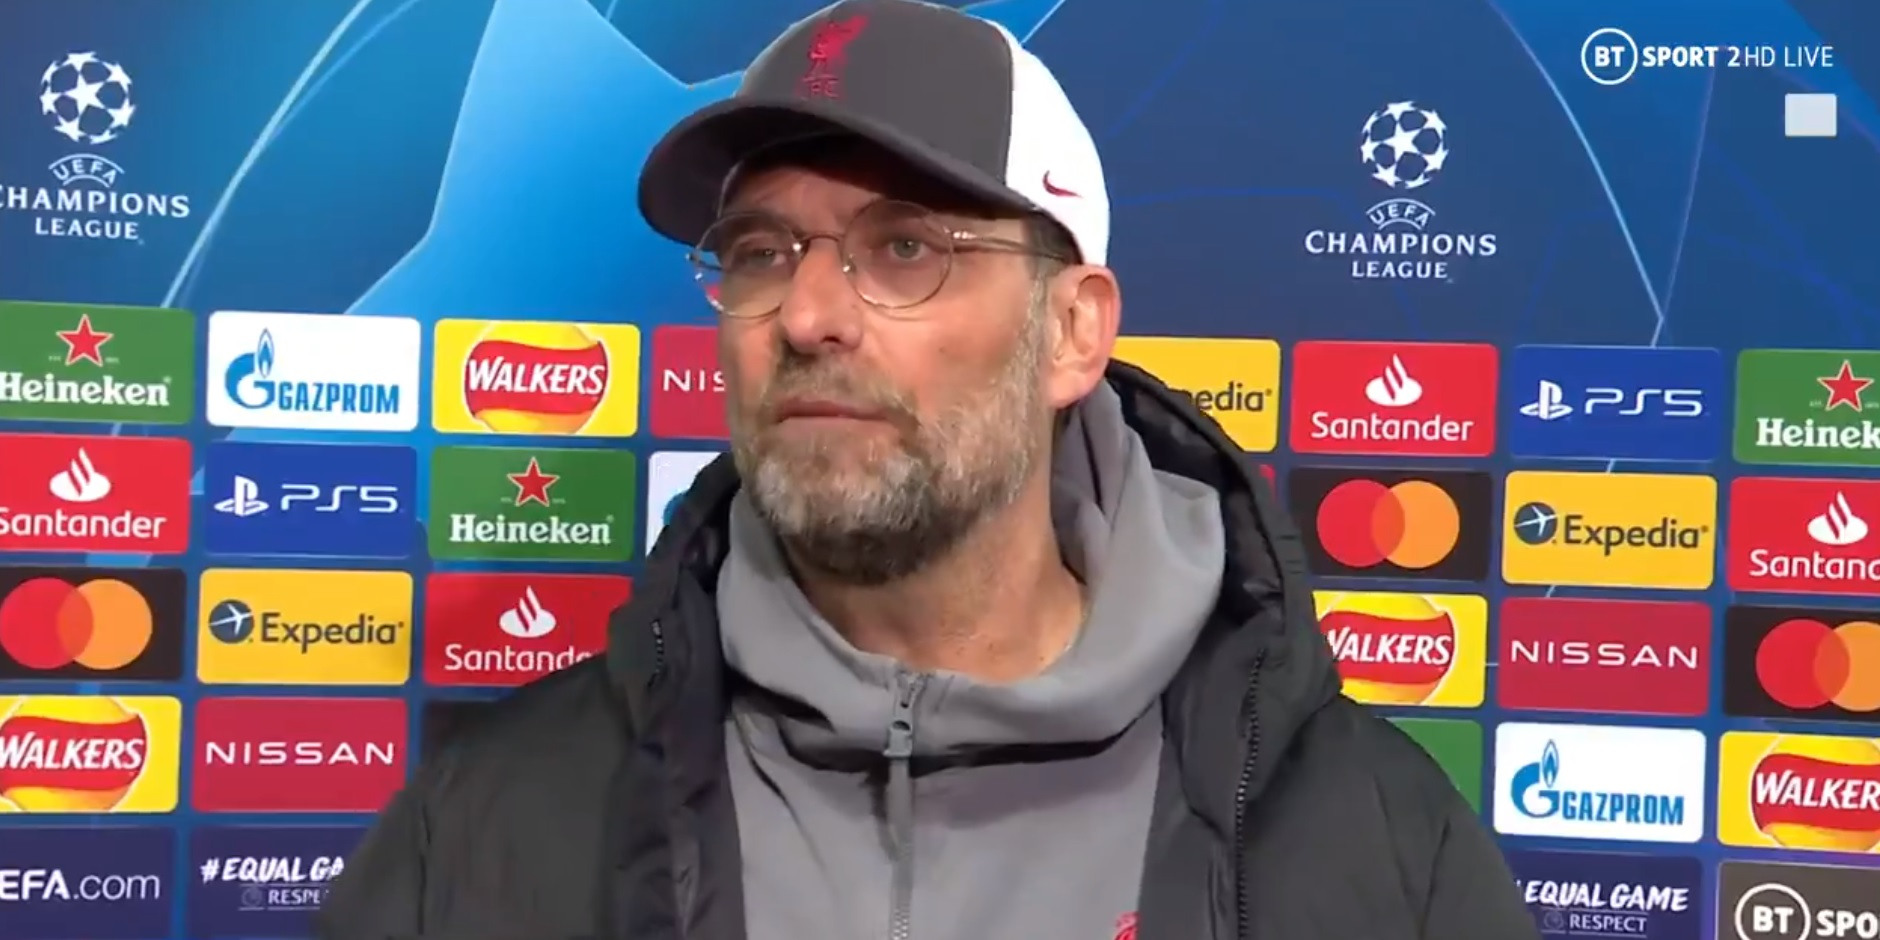 (Video) Klopp explains where Liverpool lost the Champions League tie with Madrid after exit on aggregate